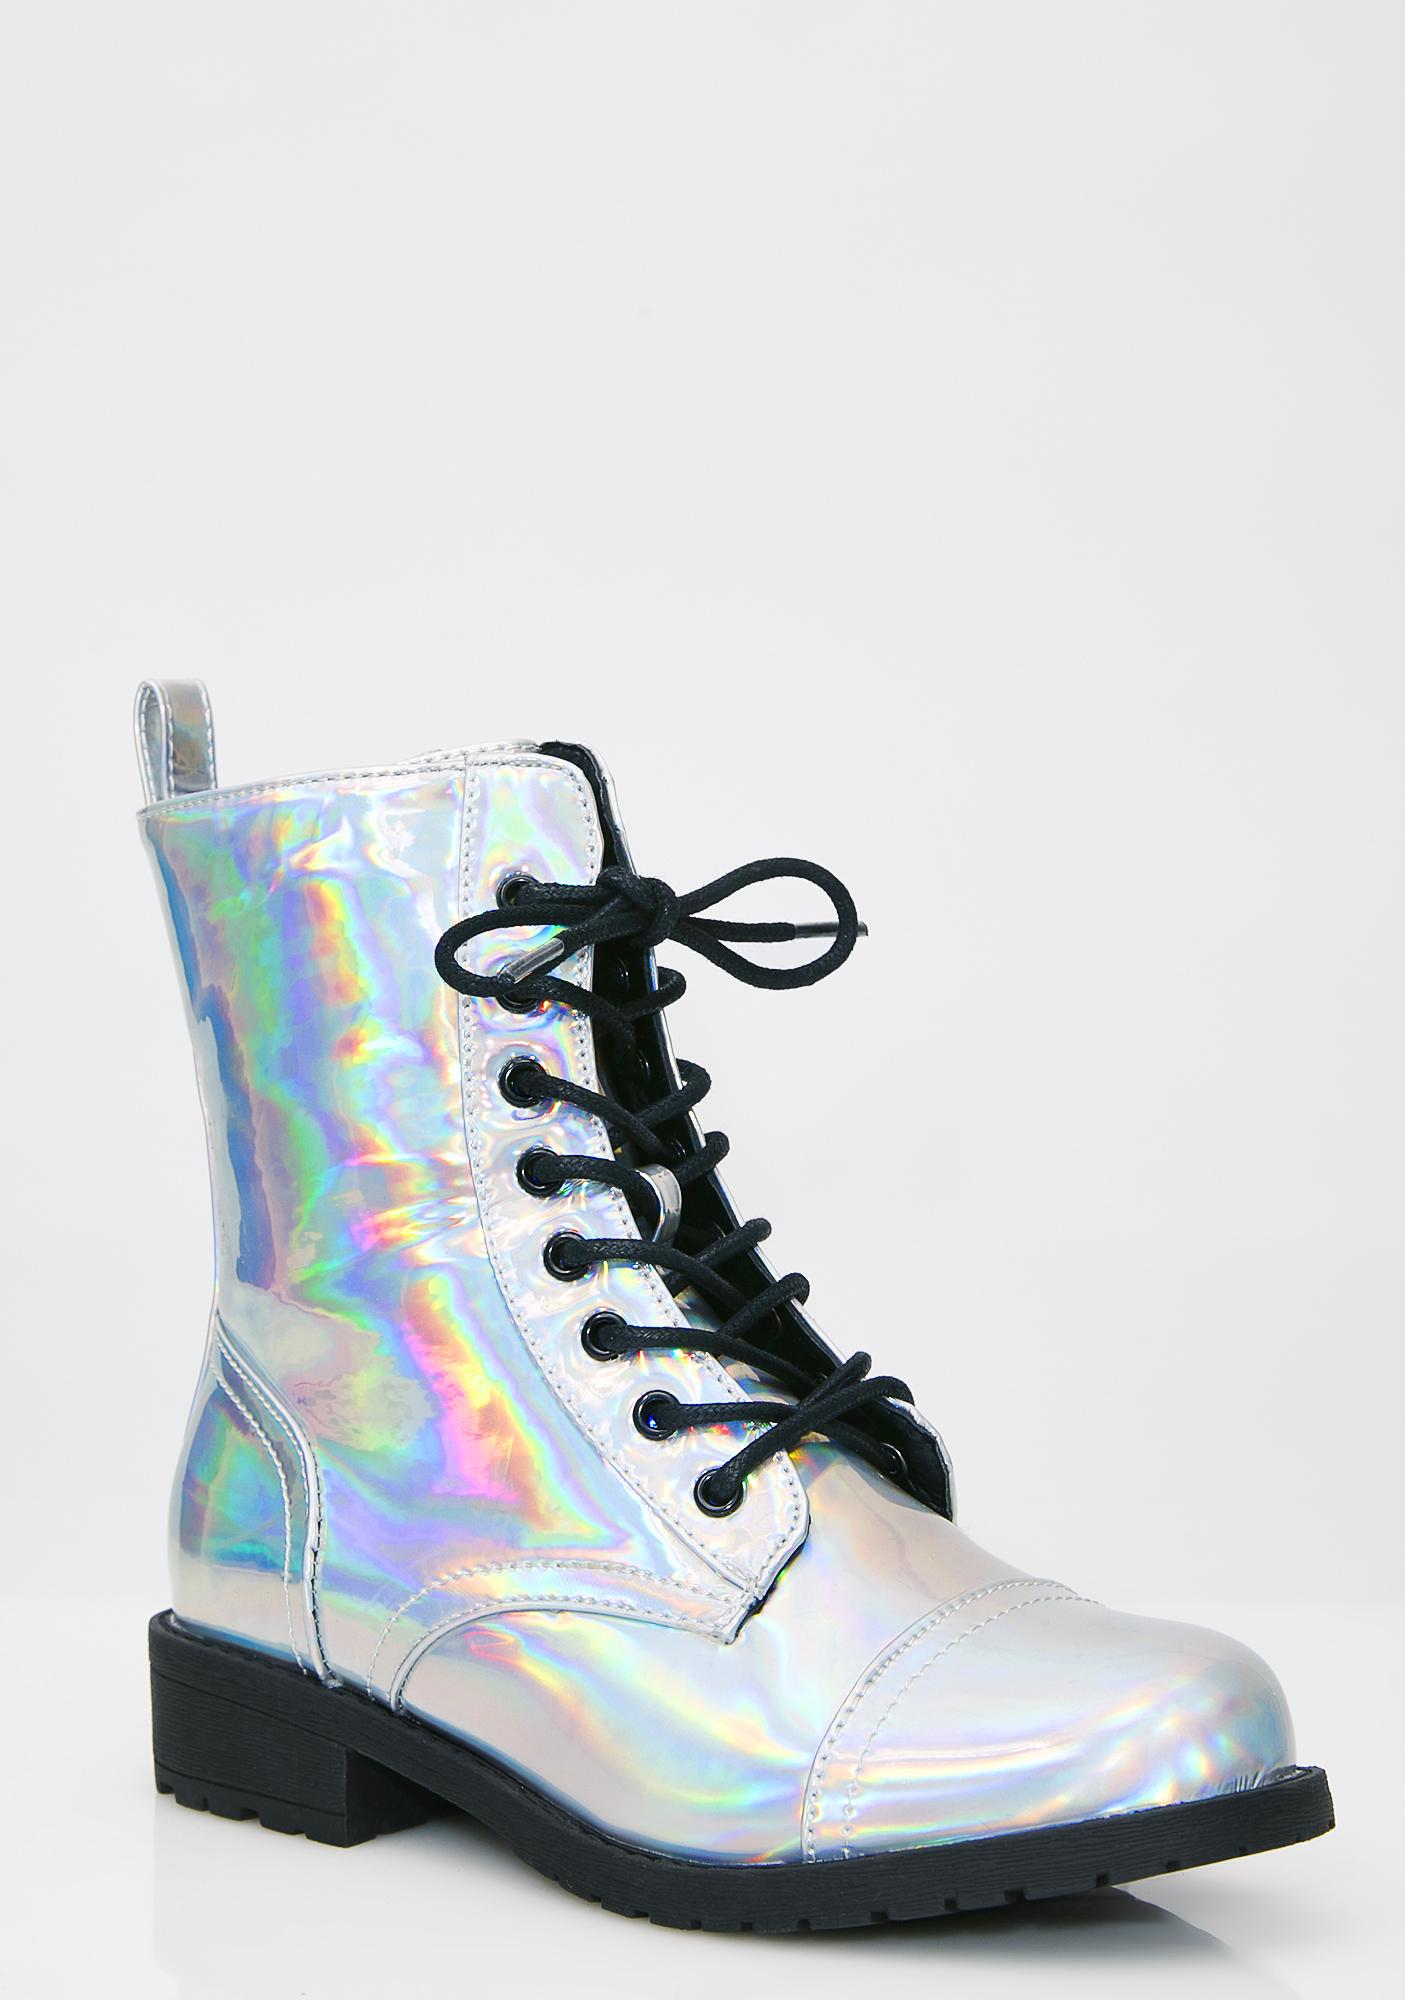 Holo Stomp Combat Boots